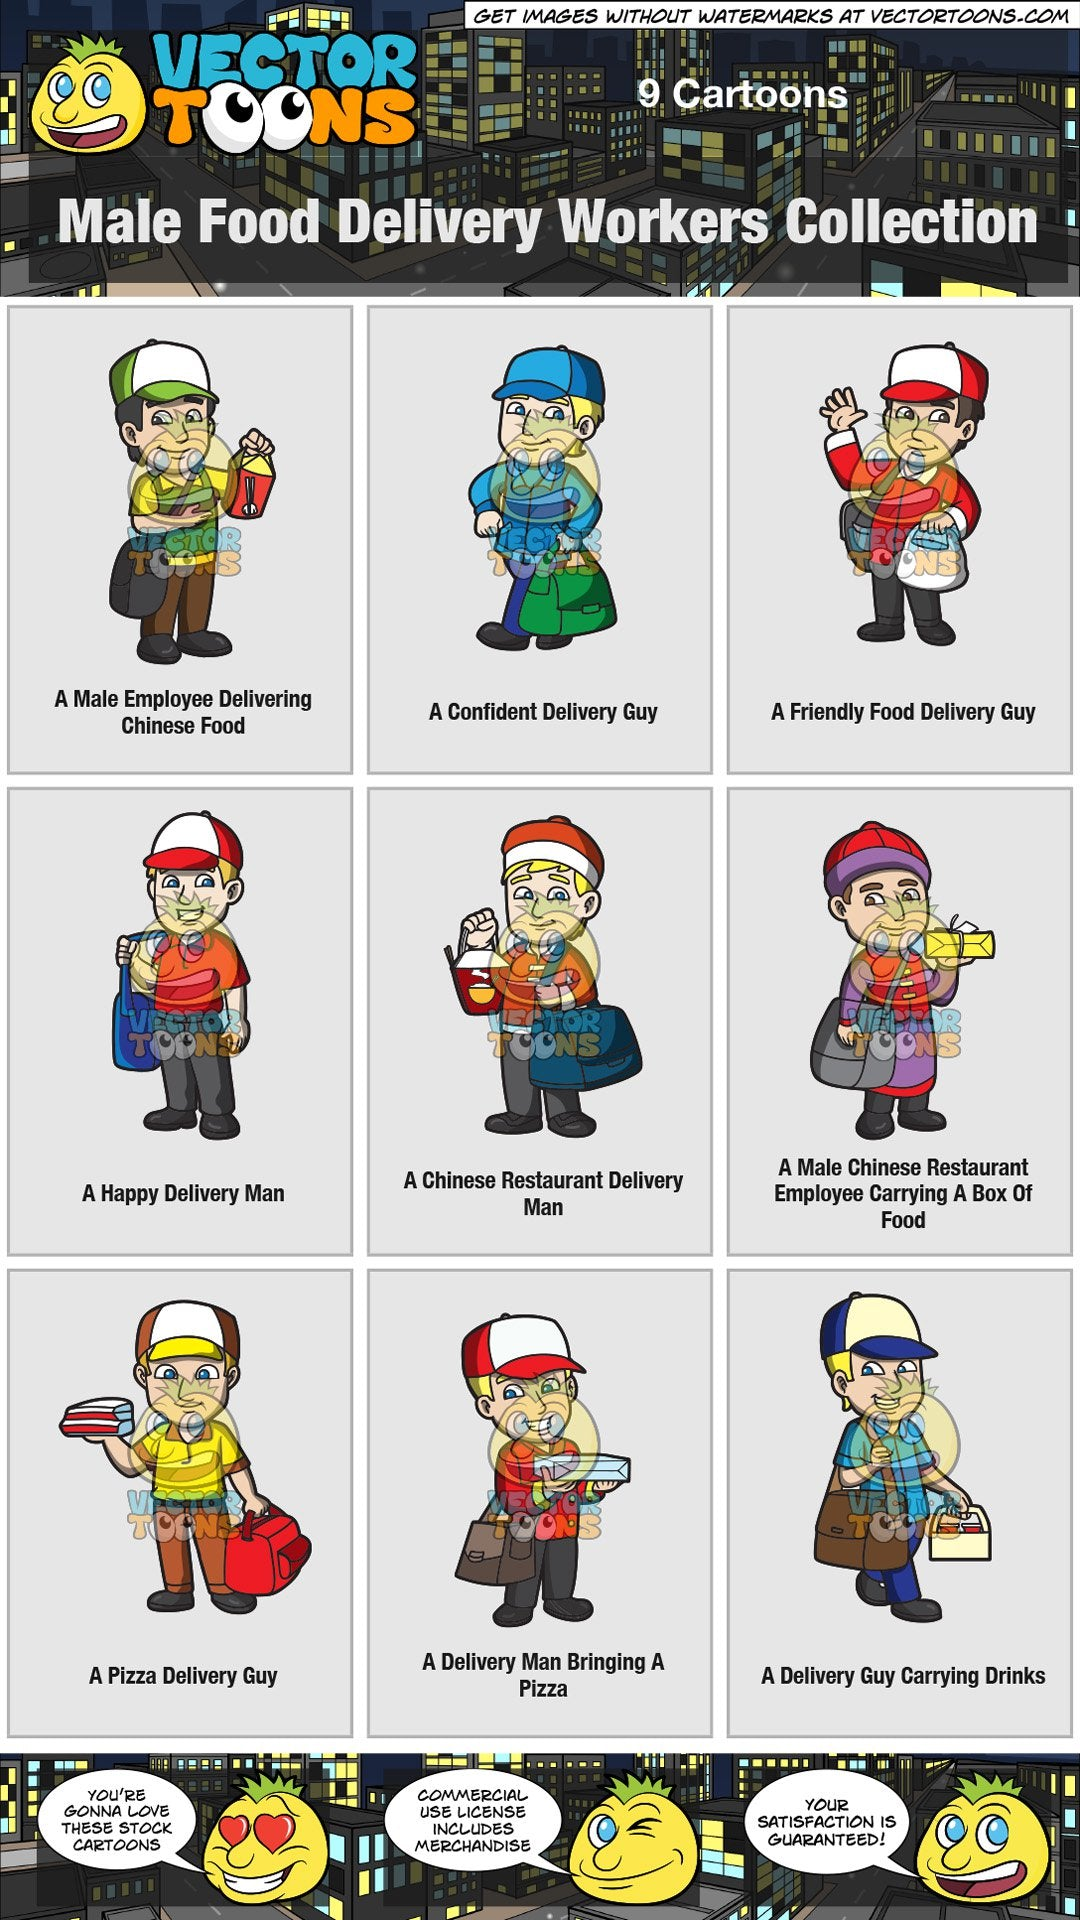 Male Food Delivery Workers Collection